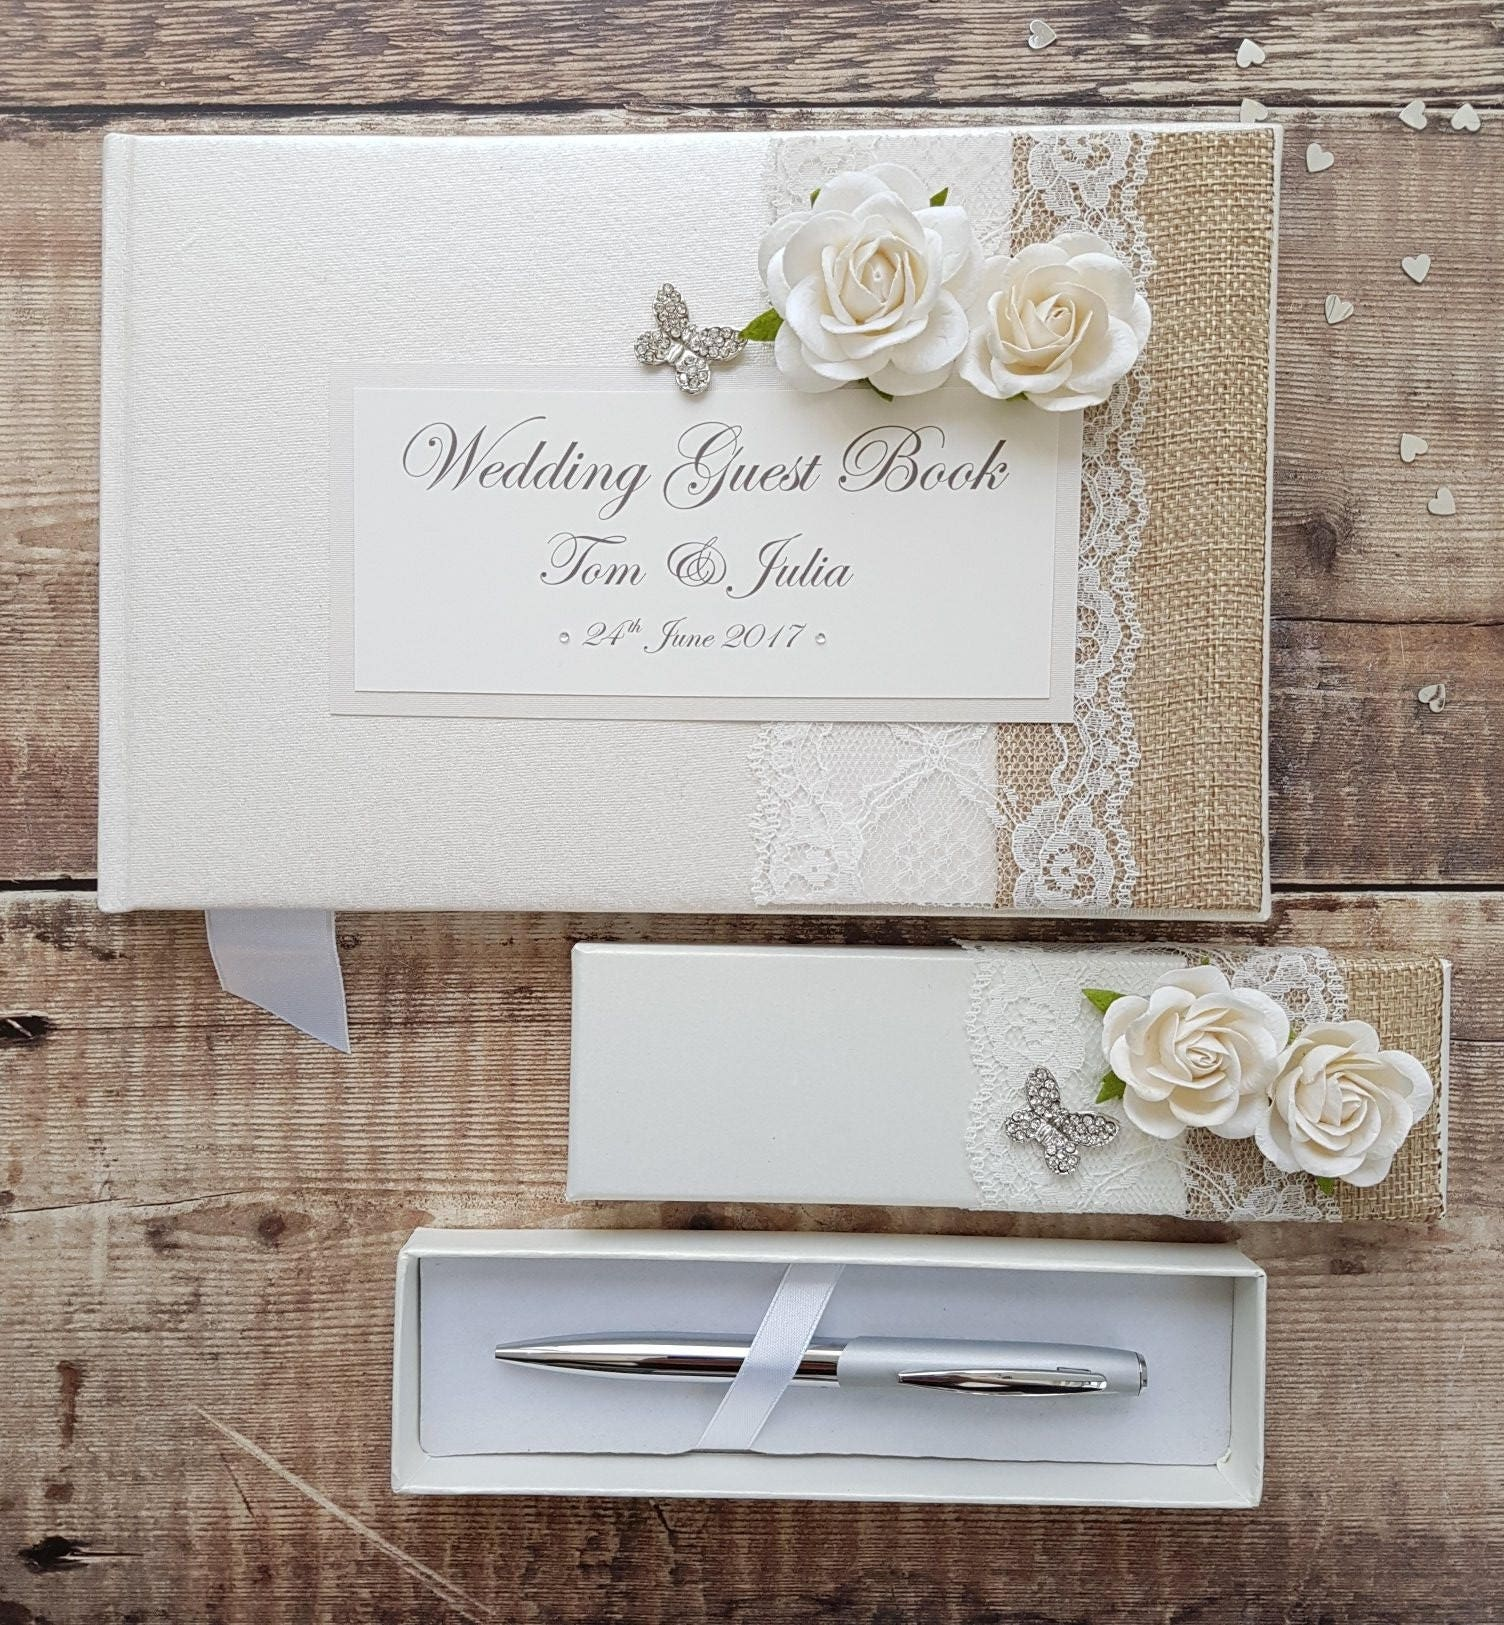 Wedding Photo Books Uk: Wedding Guest Book And Pen Set Handmade Hessian Lace Rose